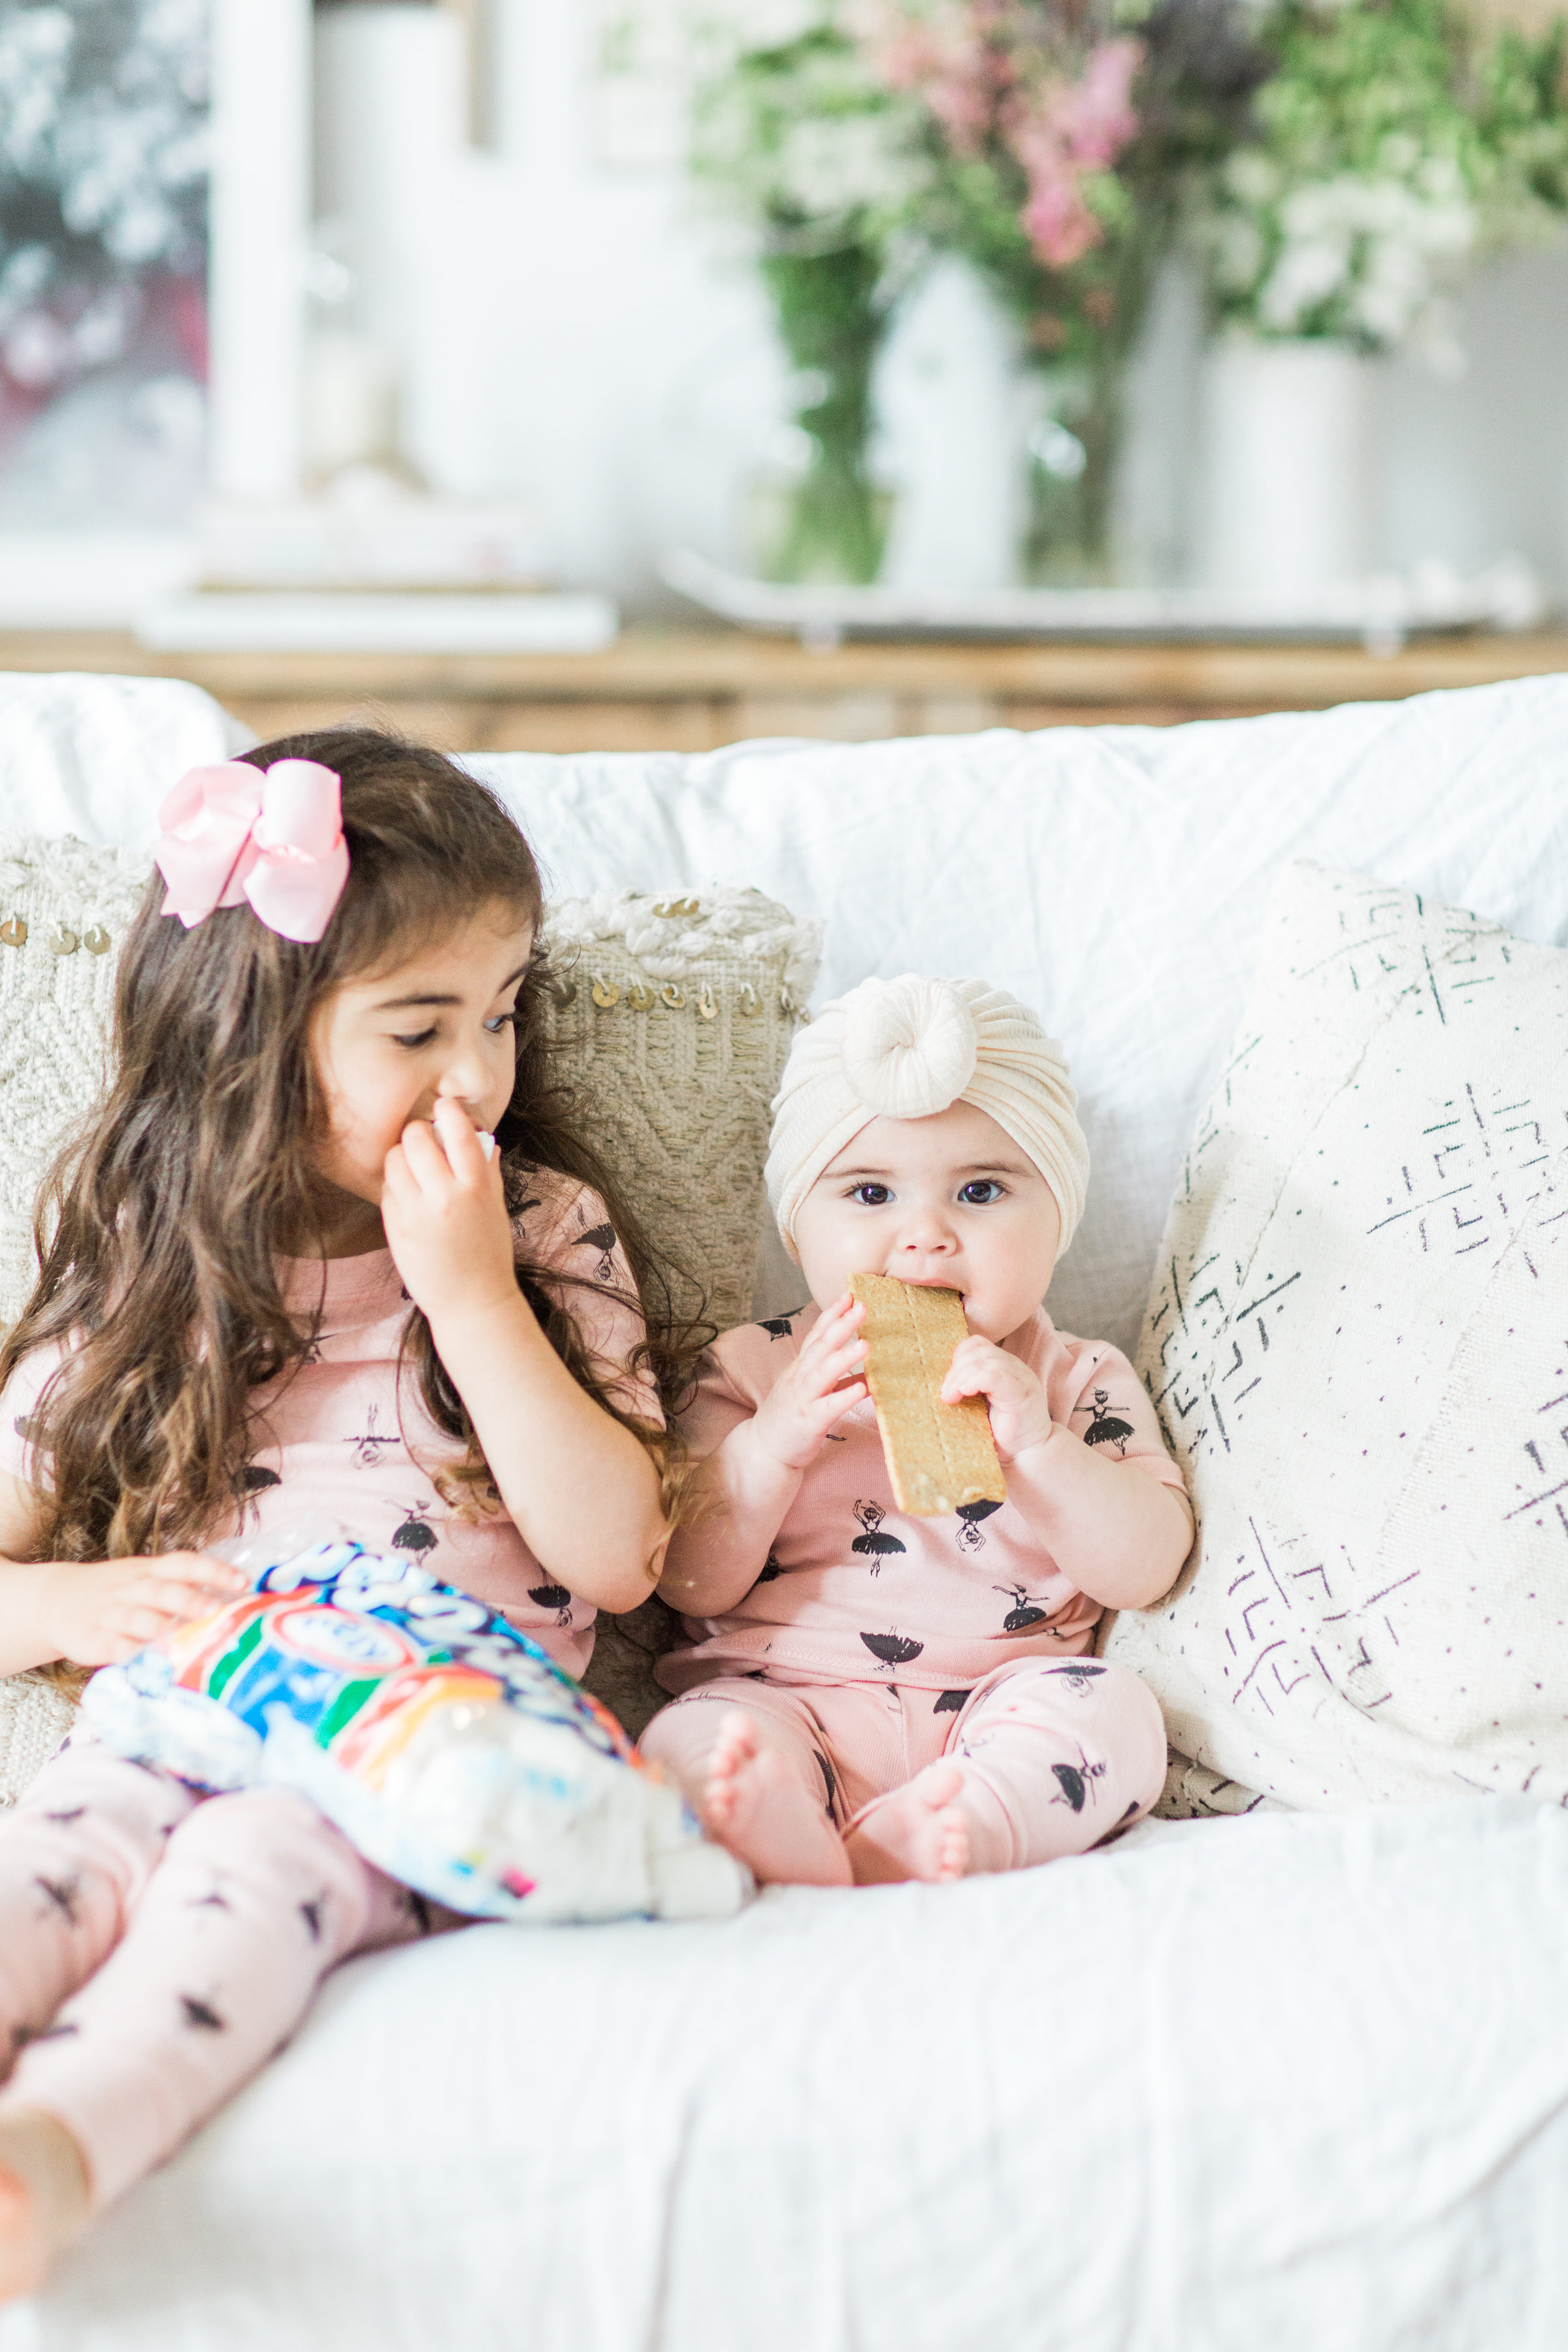 I'm sharing a big 'ol dose of cuteness; a.k.a., the behind-the-scenes of the girls trying s'mores for the first time (and caught on camera) from our family movie night! #smores #matchingpajamas #movienight #familyfun #smoresparty | glitterinc.com | @glitterinc